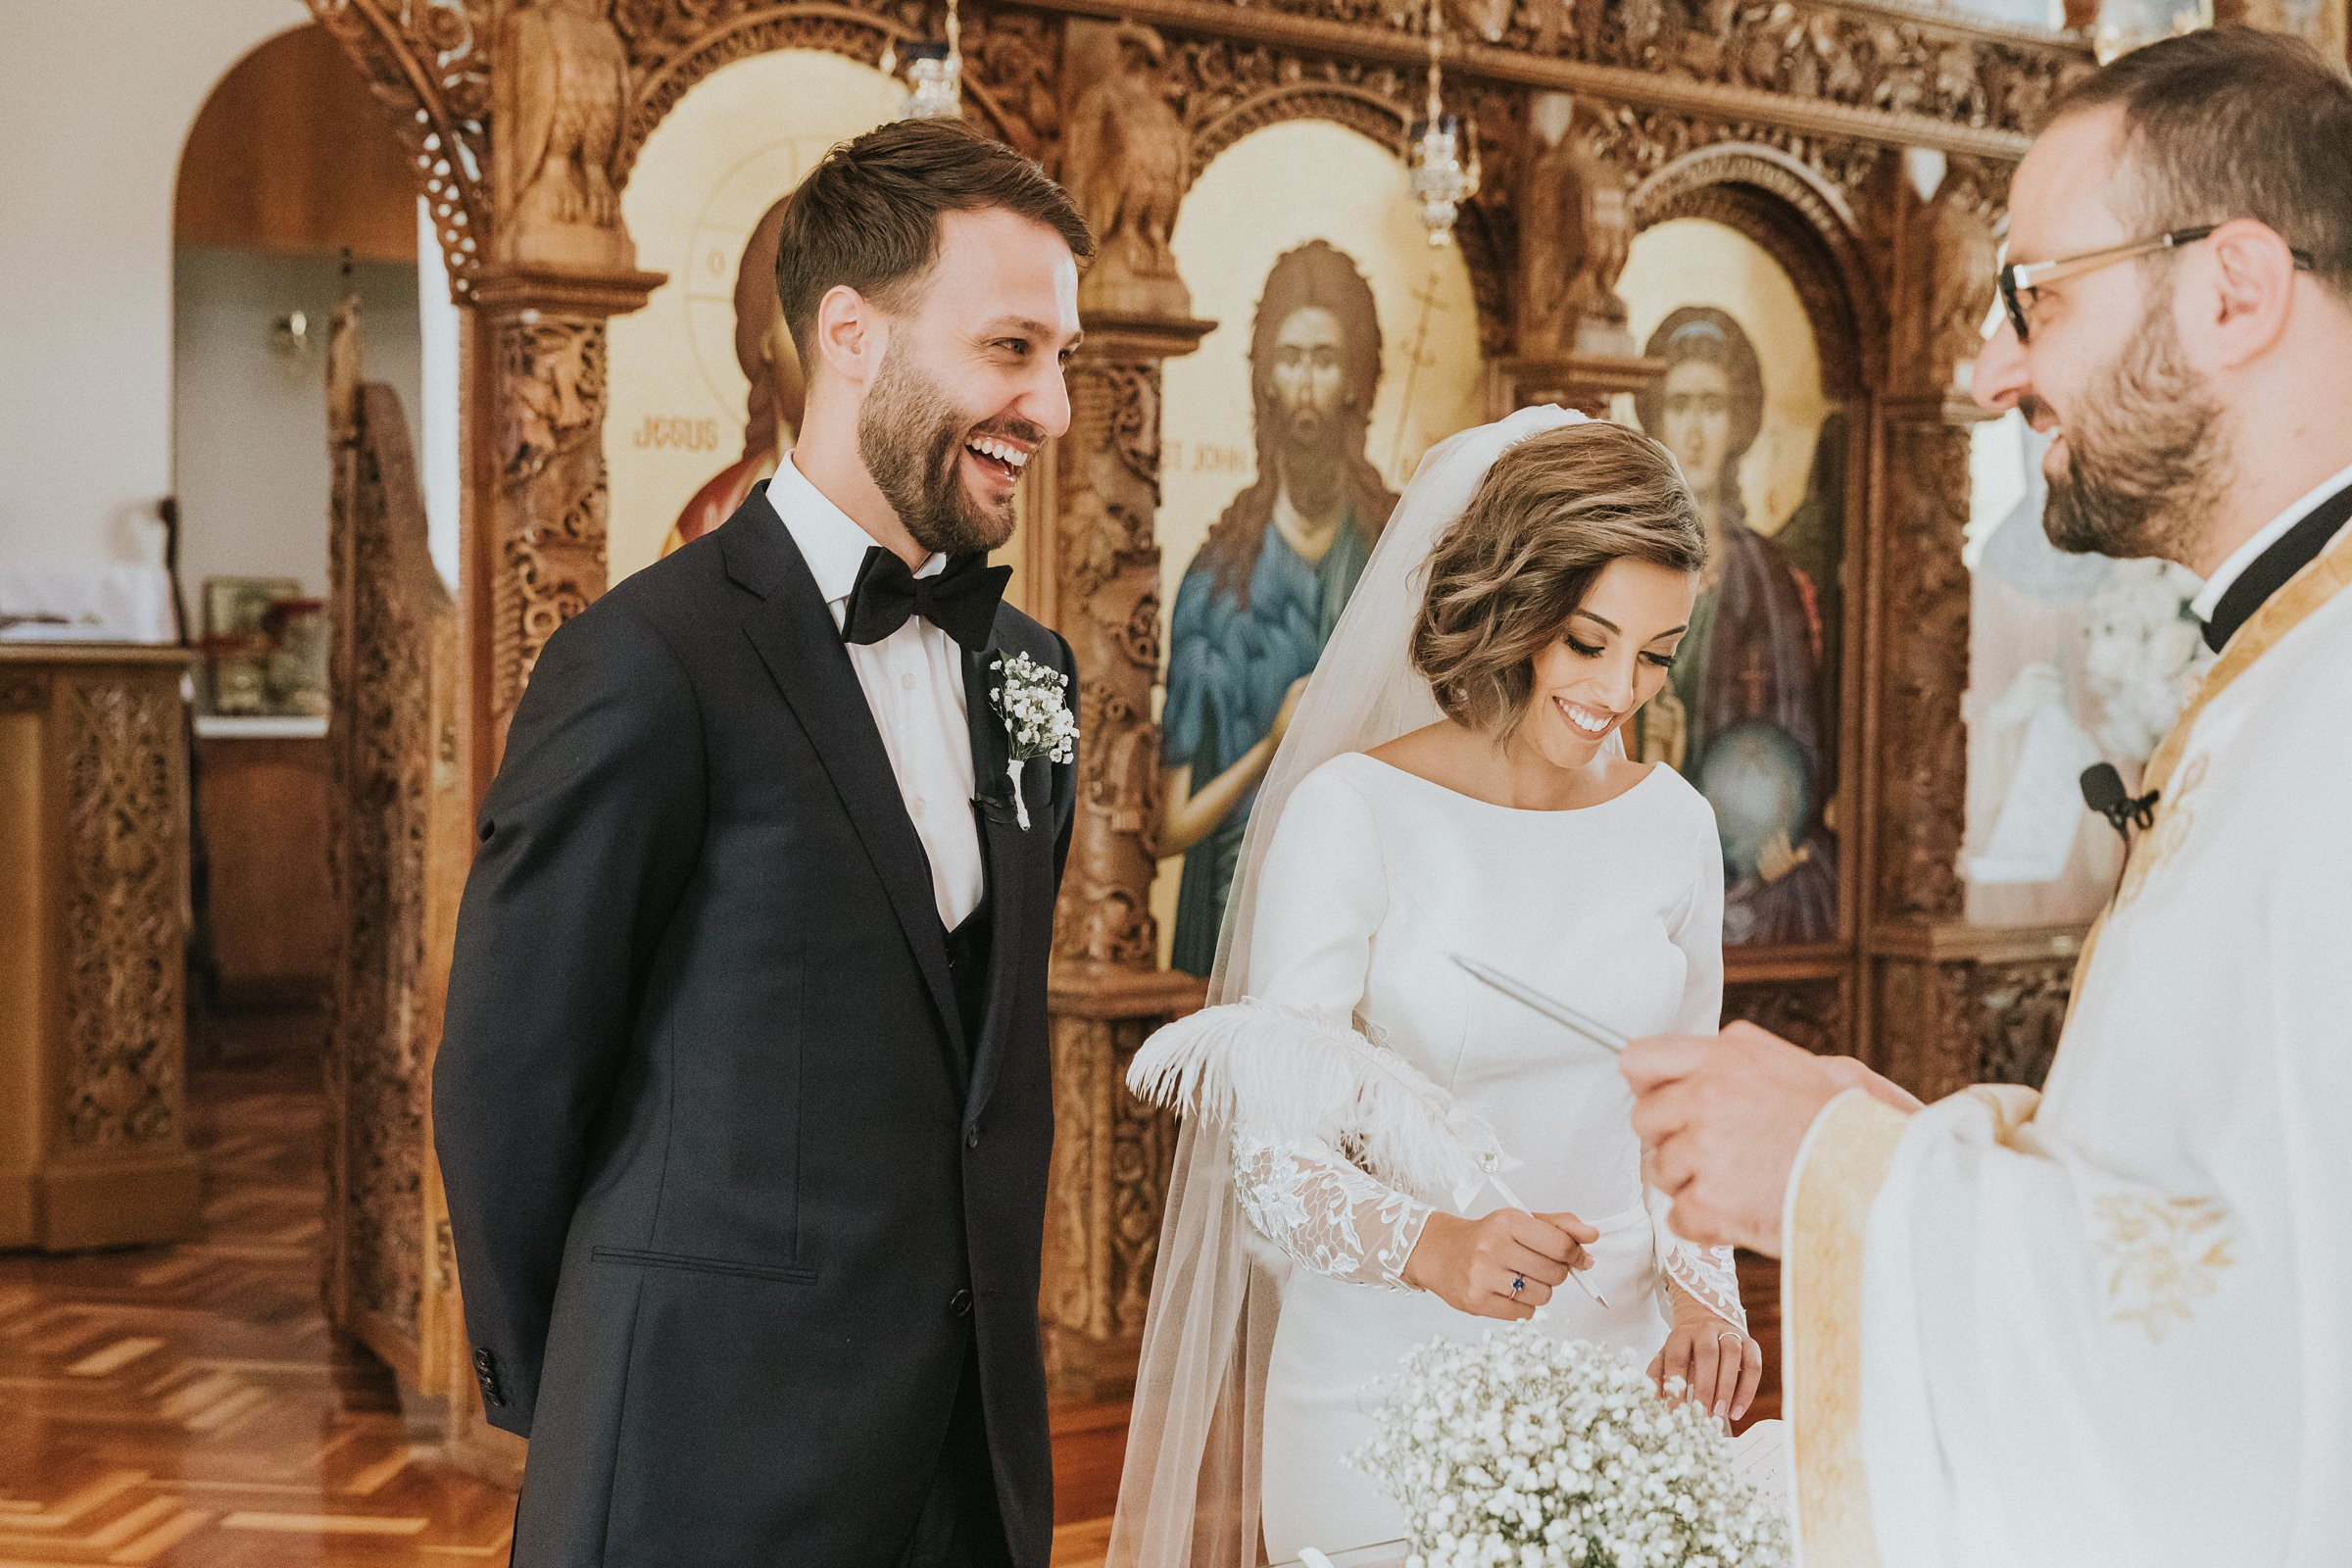 candid laughter and happiness at wedding photographed by jonathan david